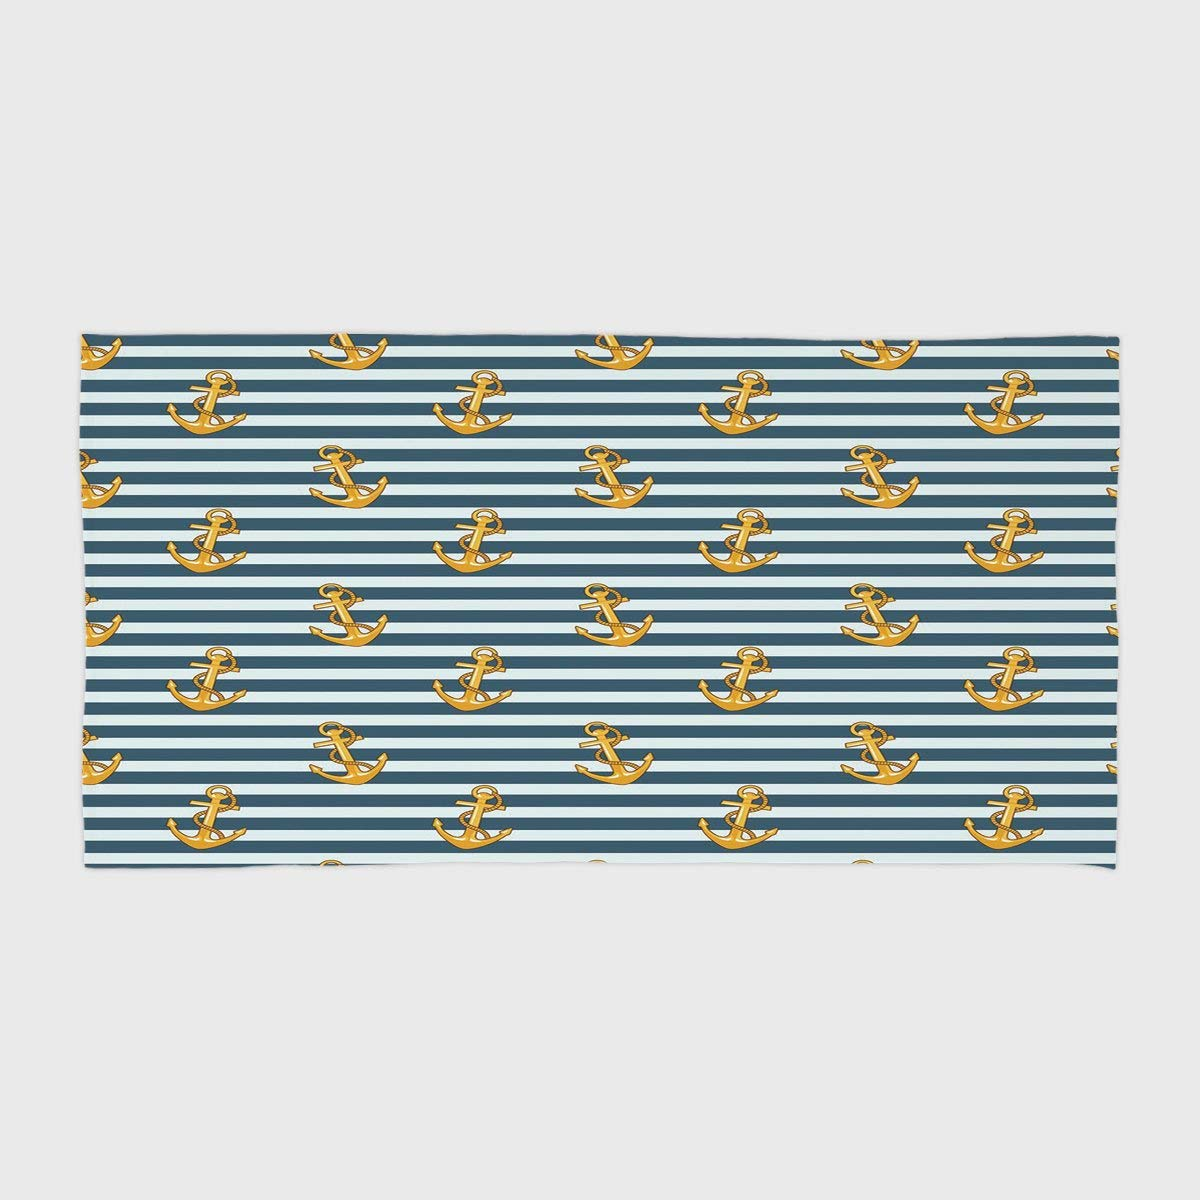 One Side Printing Hotel SPA Beach Pool Bath Hand Towel,Harbour Stripe Old Fashion Stylish Nautical Fashion with Anchors Coast Theme Decorative Earth Yellow Slate Blue,for Kids Teens and Adults